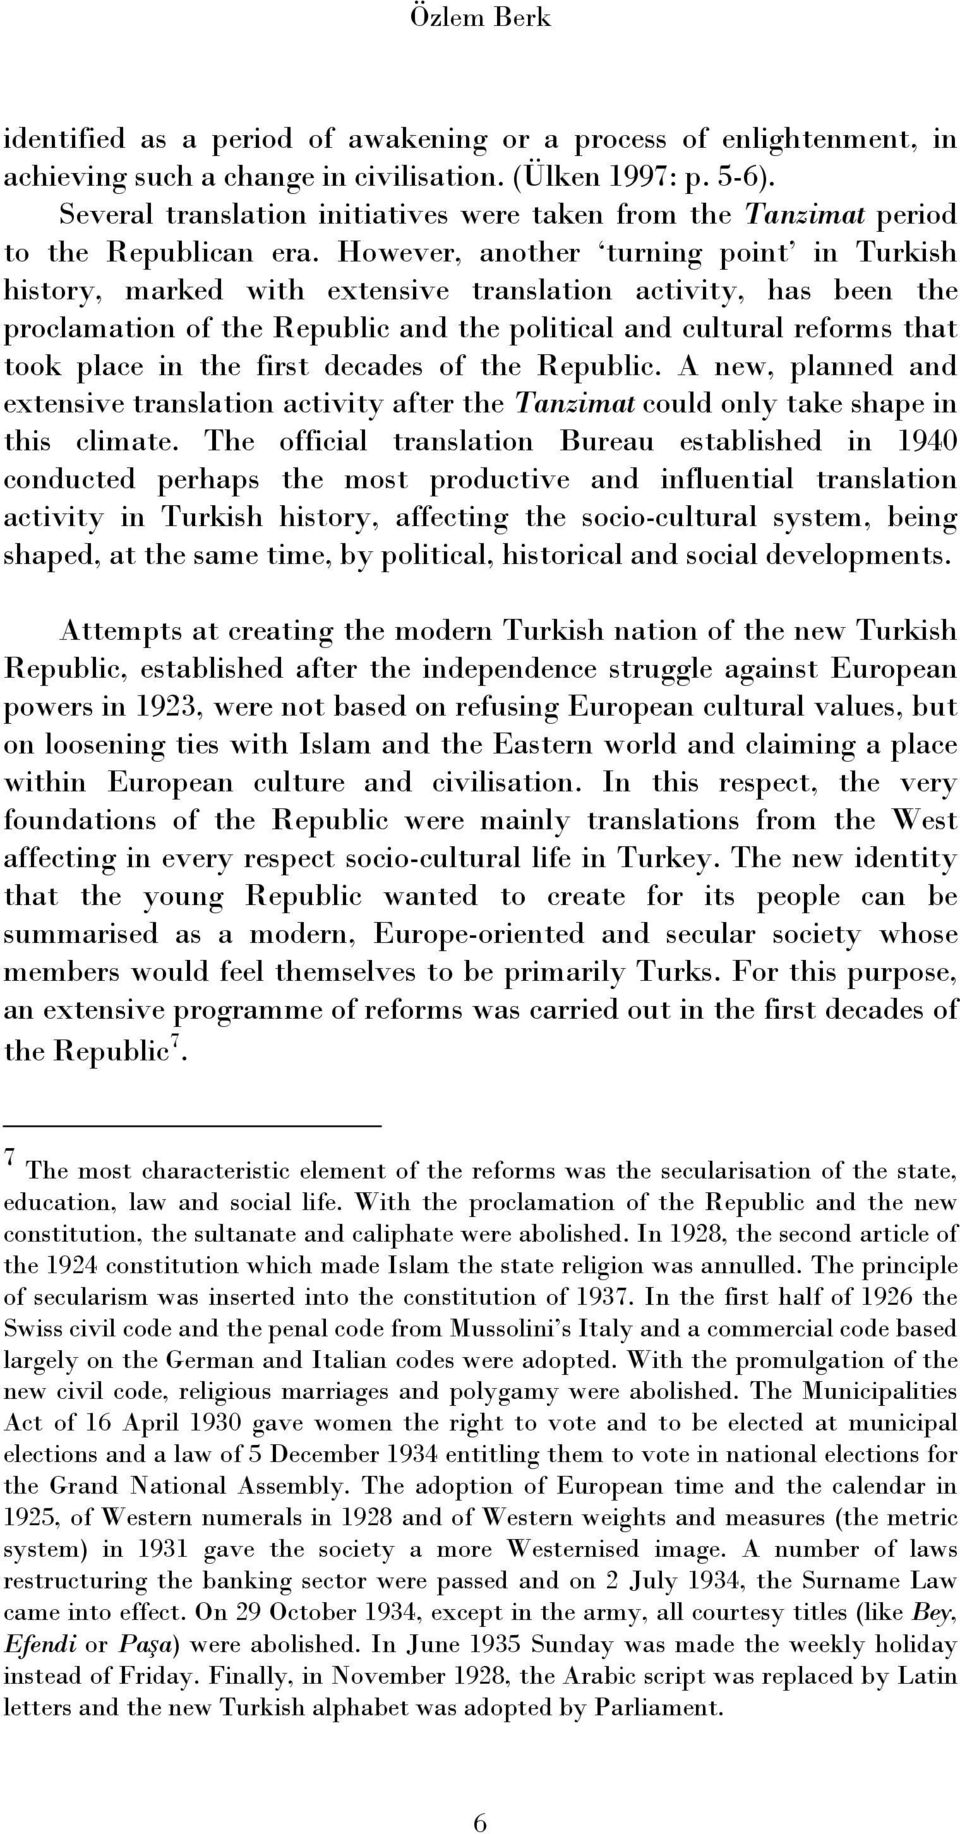 However, another turning point in Turkish history, marked with extensive translation activity, has been the proclamation of the Republic and the political and cultural reforms that took place in the